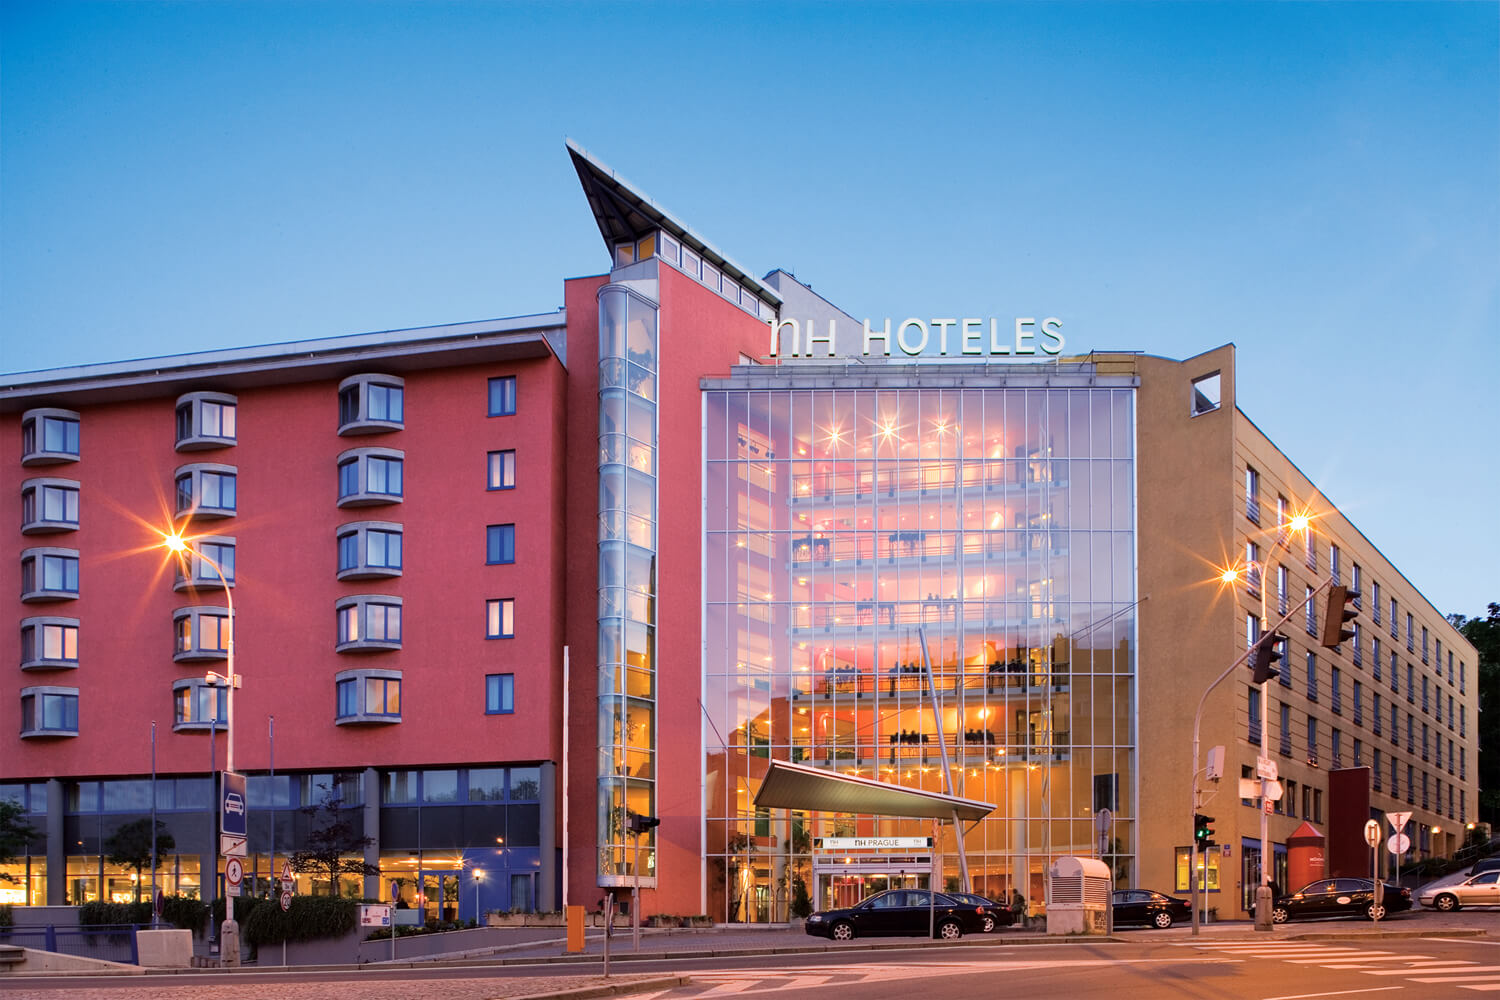 Nh hotel prag city g nstig online buchen for Giovanni s manchester nh